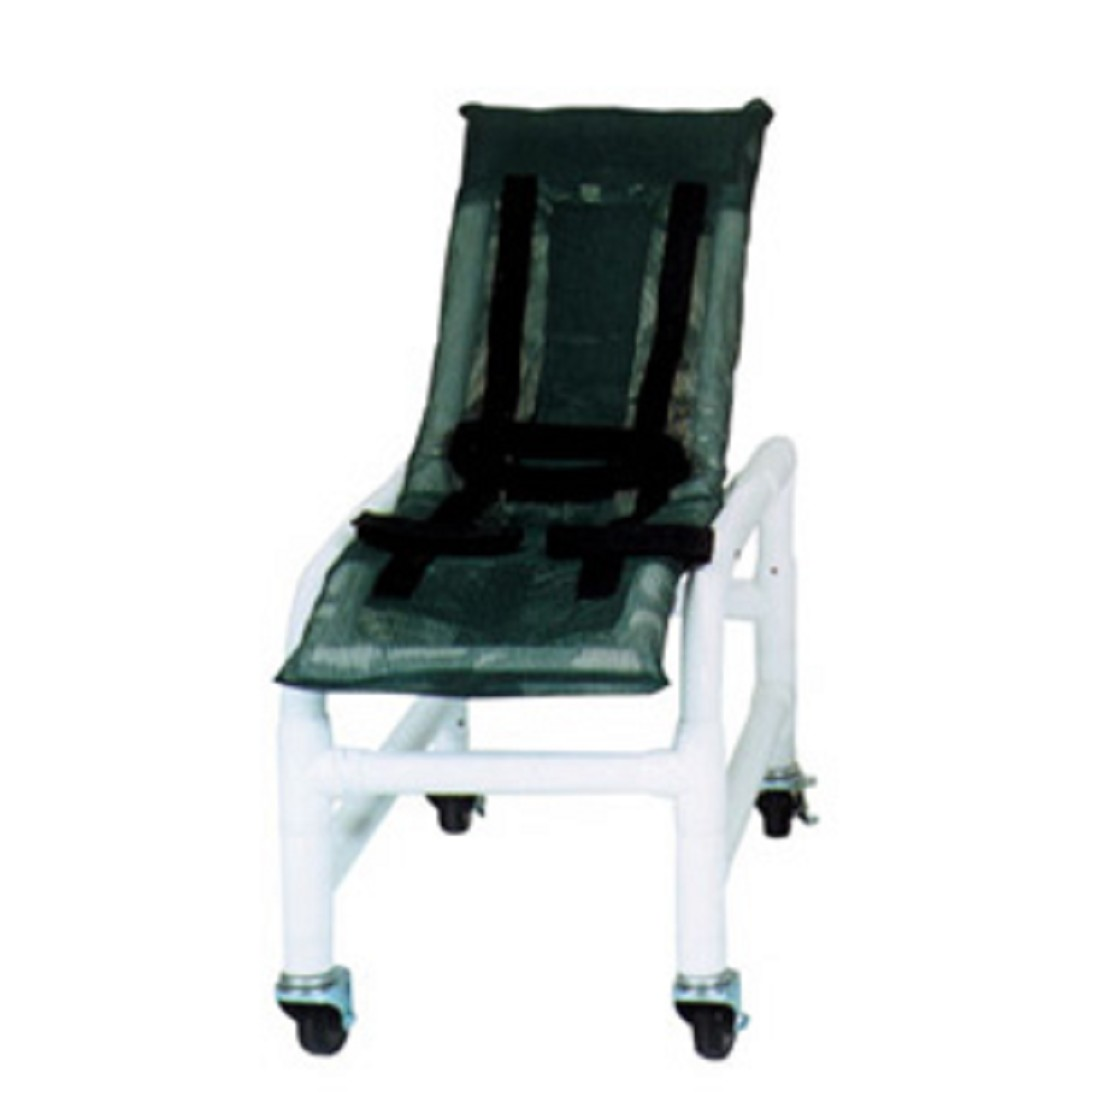 Small Reclining Bath Chair with Base Extension And Casters